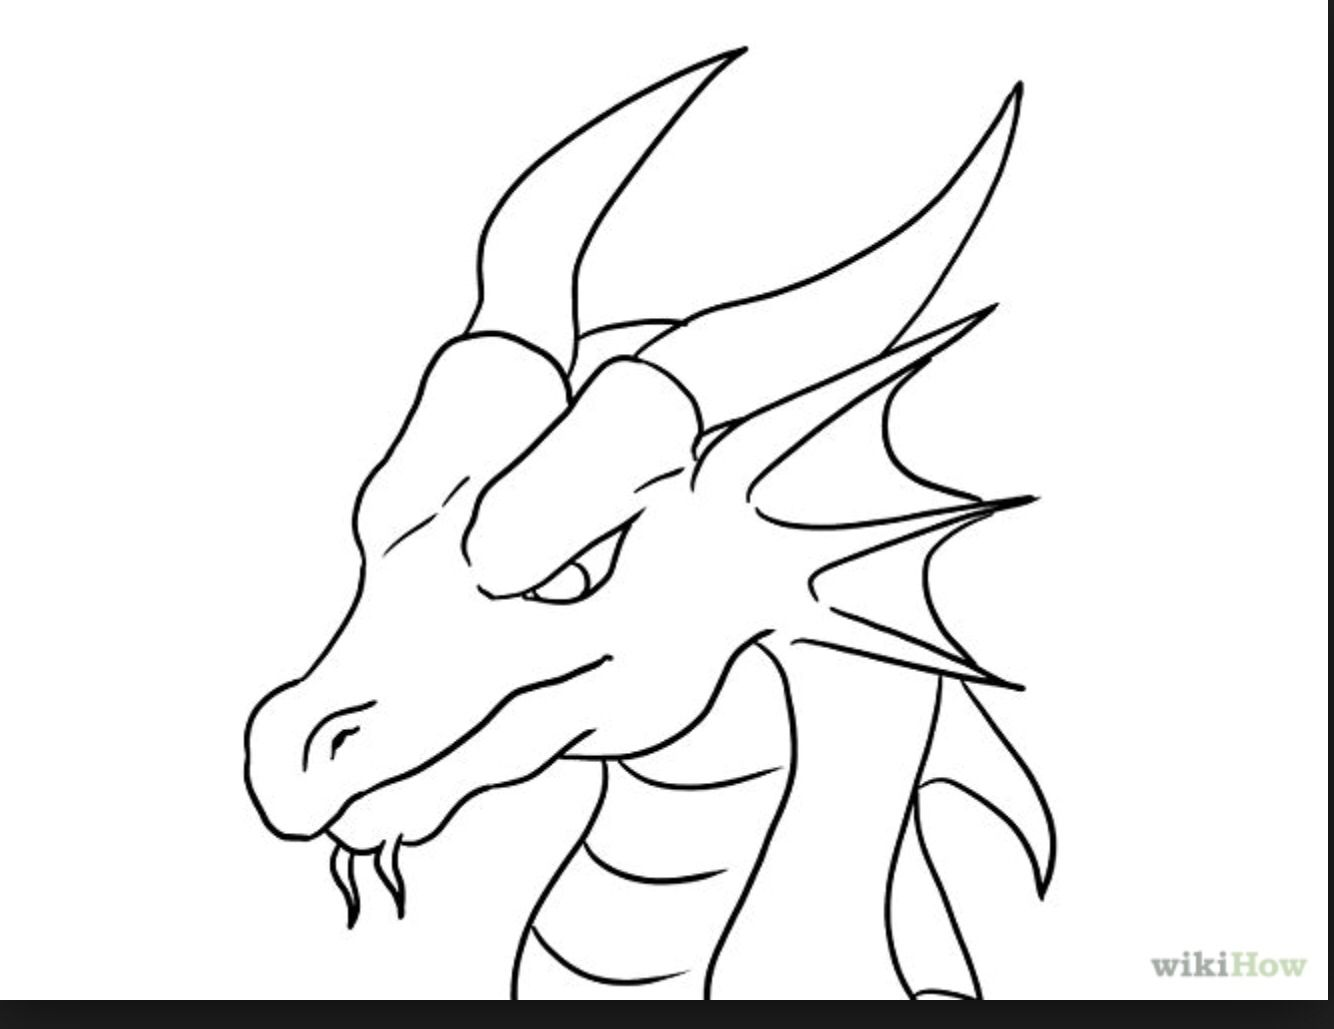 25 best ideas about easy dragon drawings on pinterest easy to draw dragons dragons to draw and easy drawing tutorial